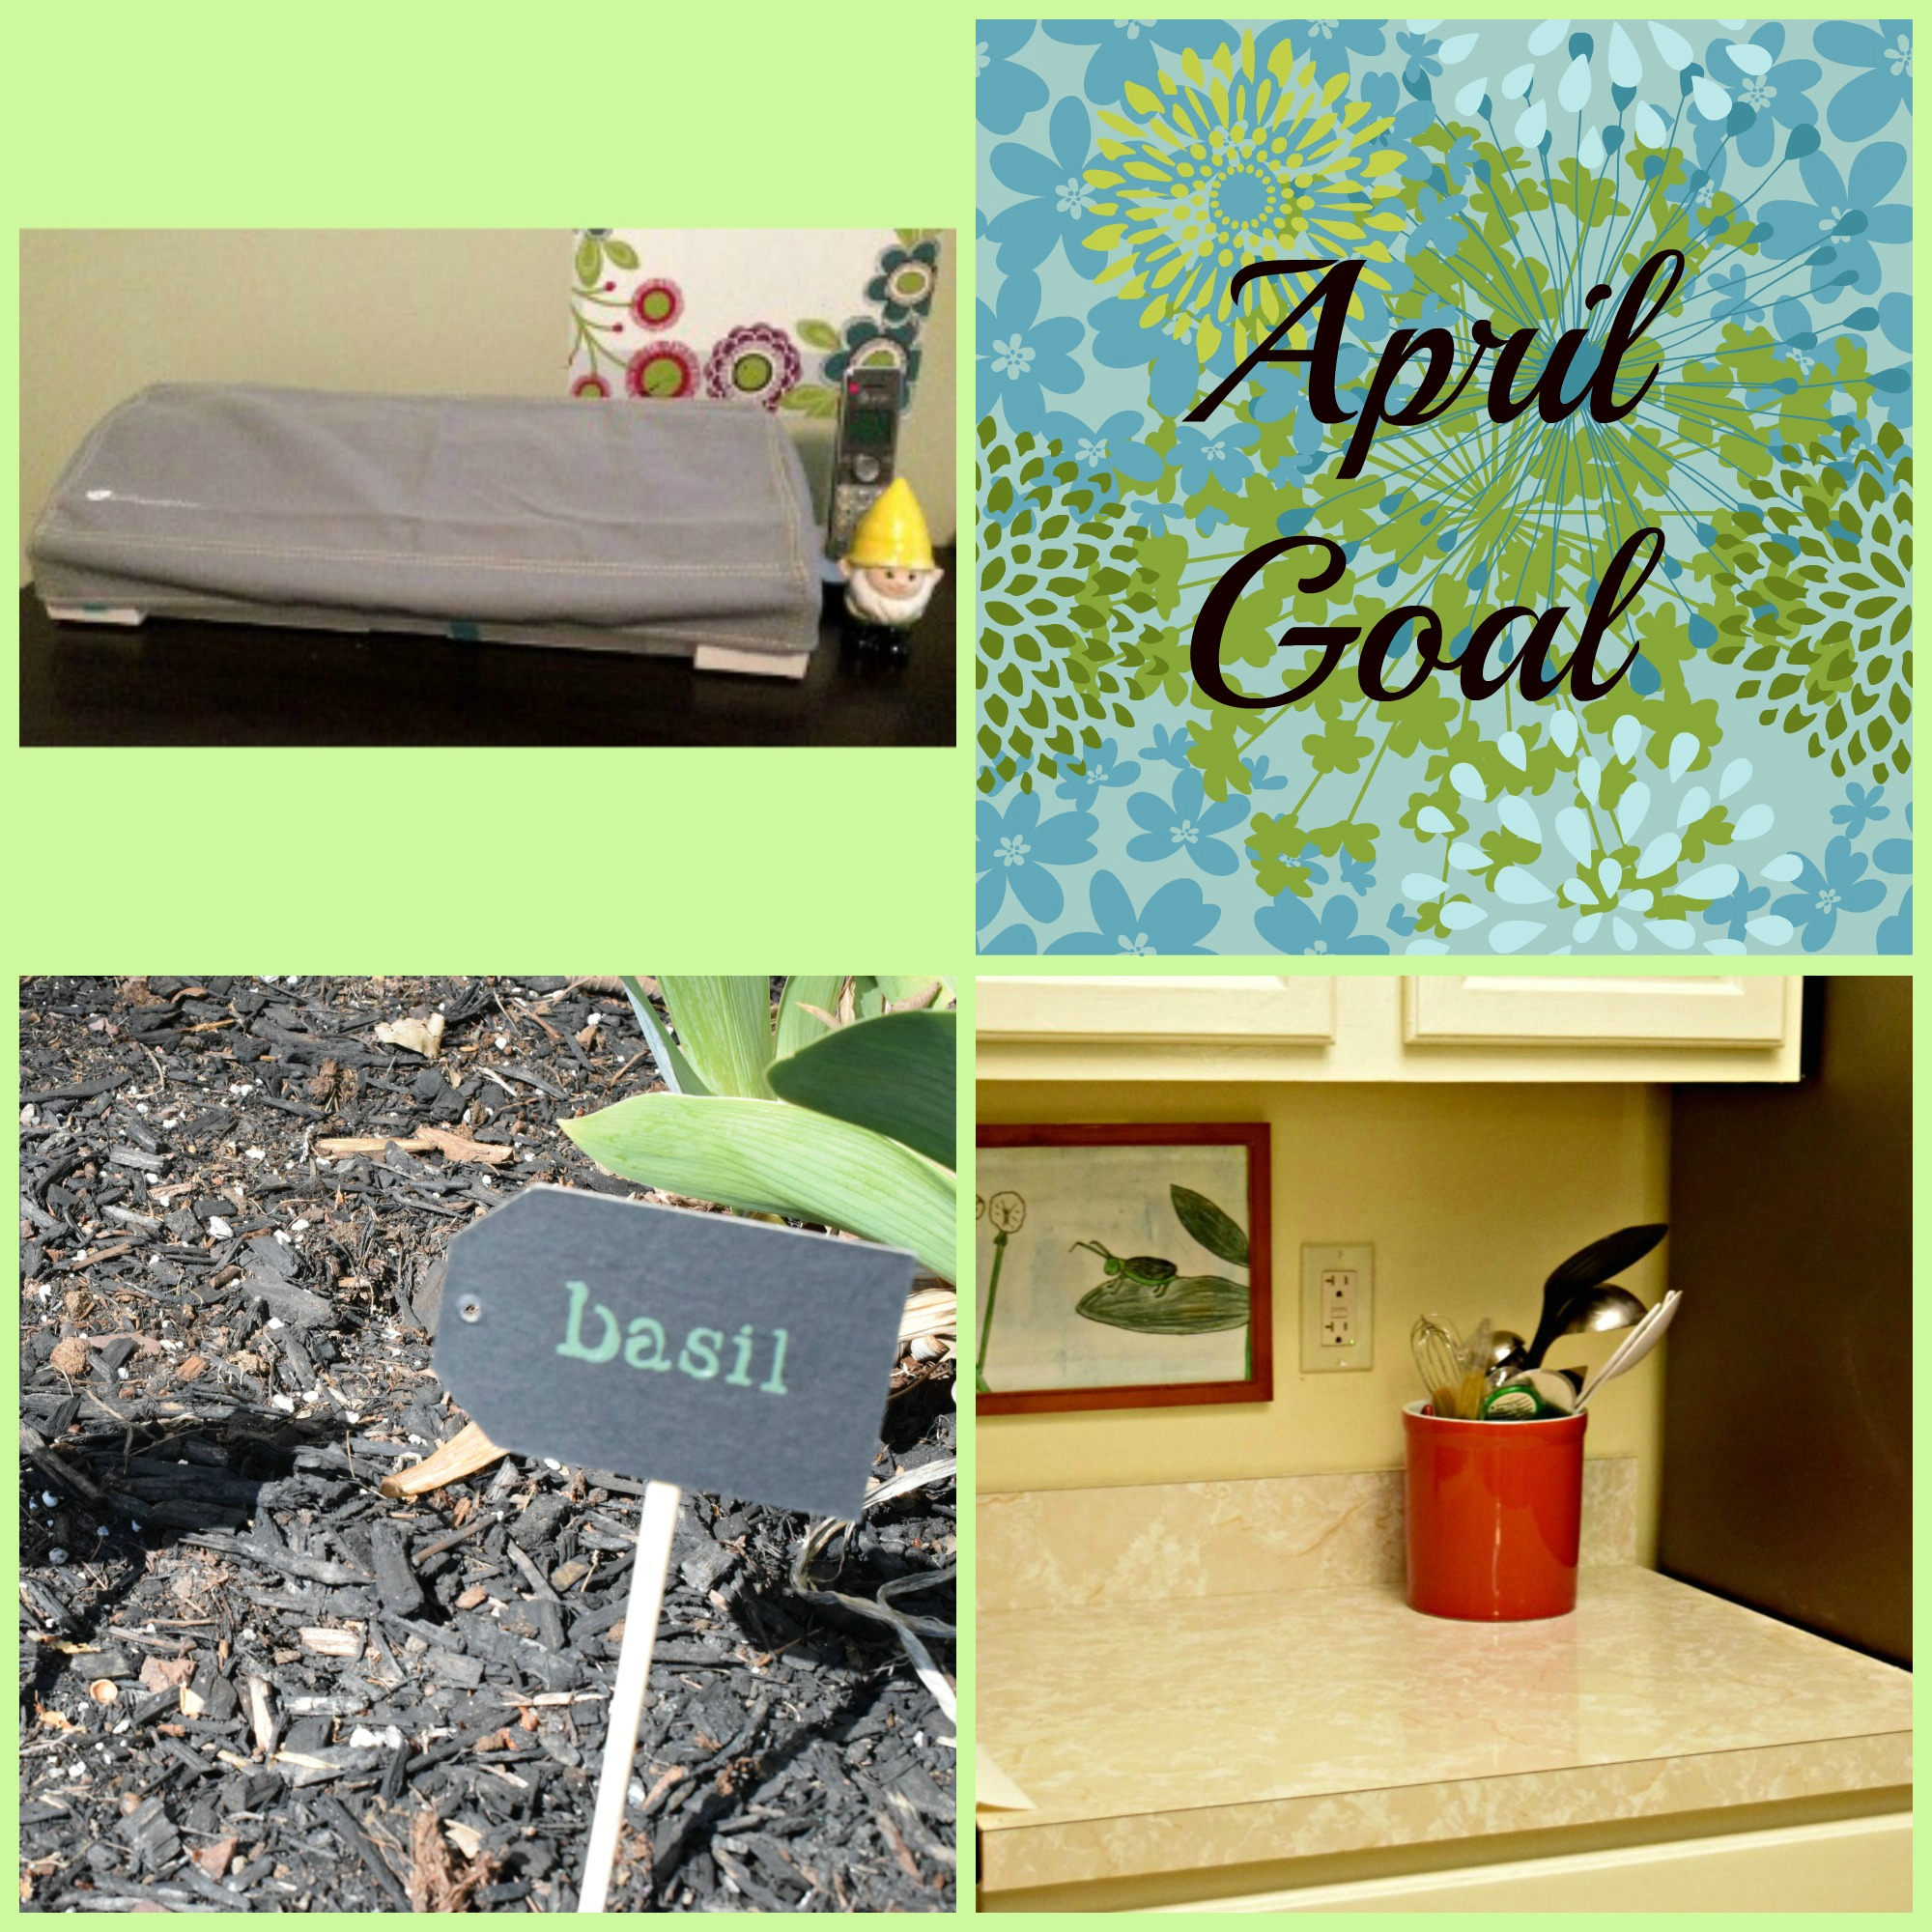 My April goal is to learn how to use my new Silhouette Cameo 3 -- but I still have to complete my kitchen and garden goals!